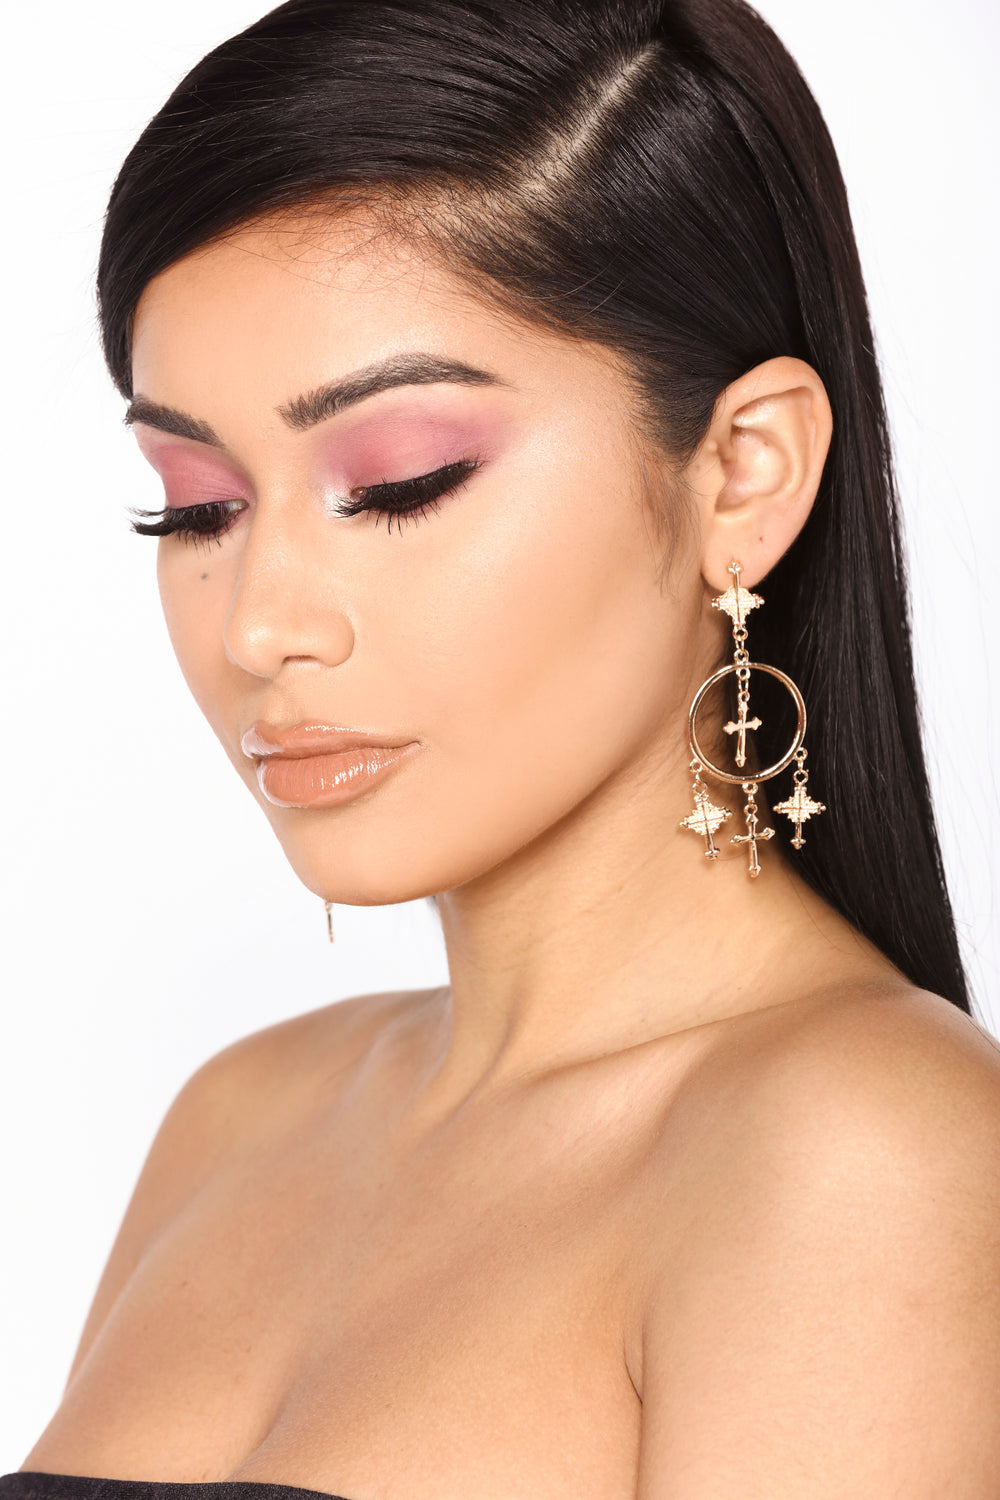 Get In My Circle Earrings - Gold